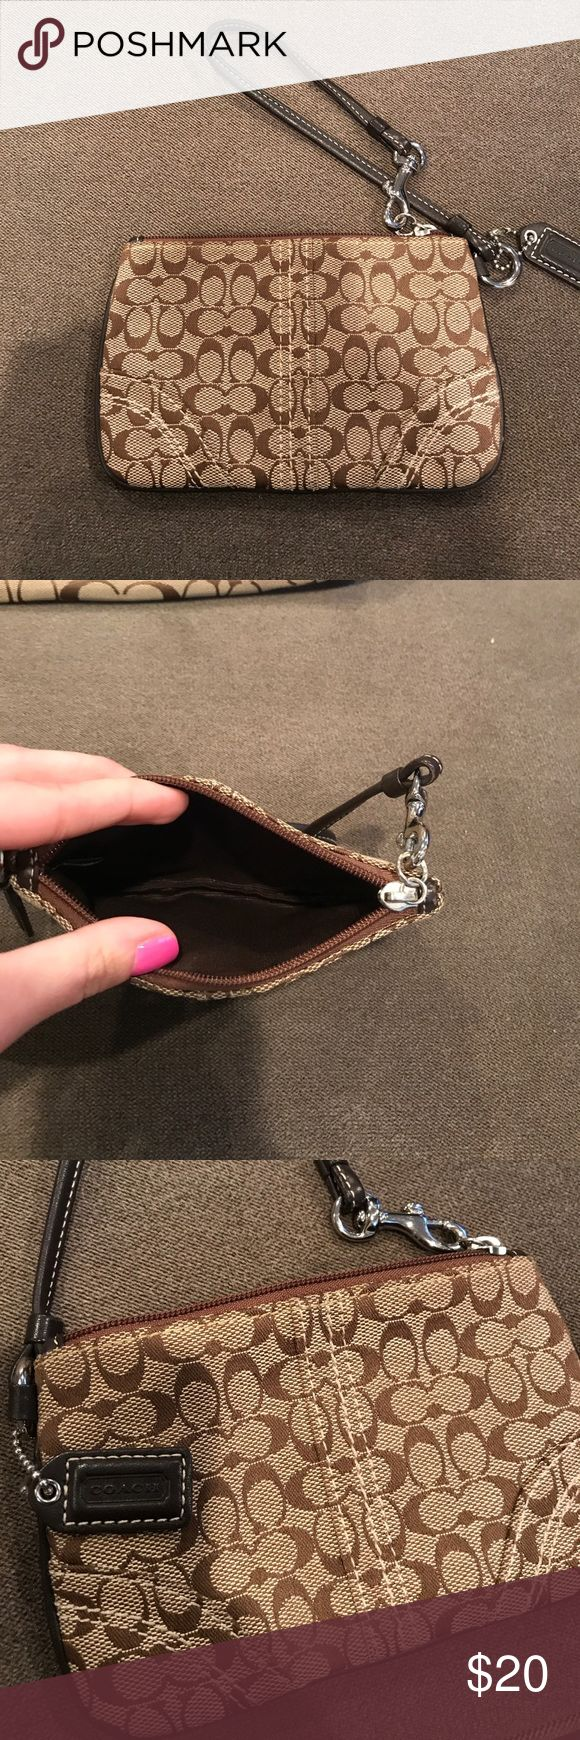 Authentic coach wristlet Small brown coach wristlet I barely used.  Condition is like new with no signs of wear. Coach Bags Clutches & Wristlets